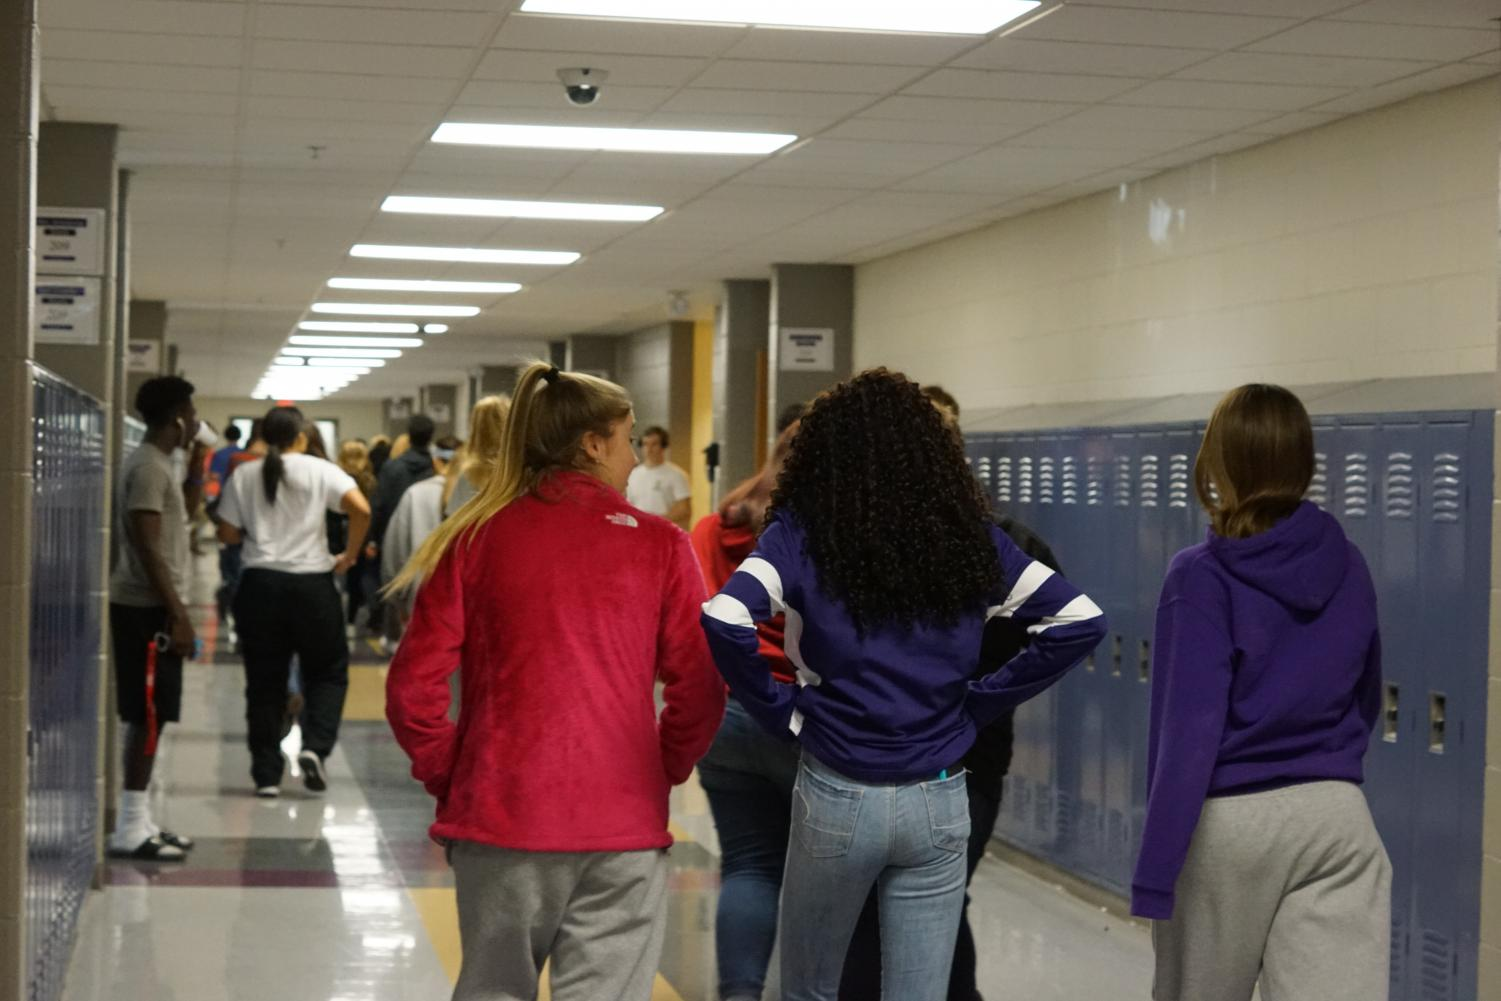 Students walk the halls after being dismissed from lunch.